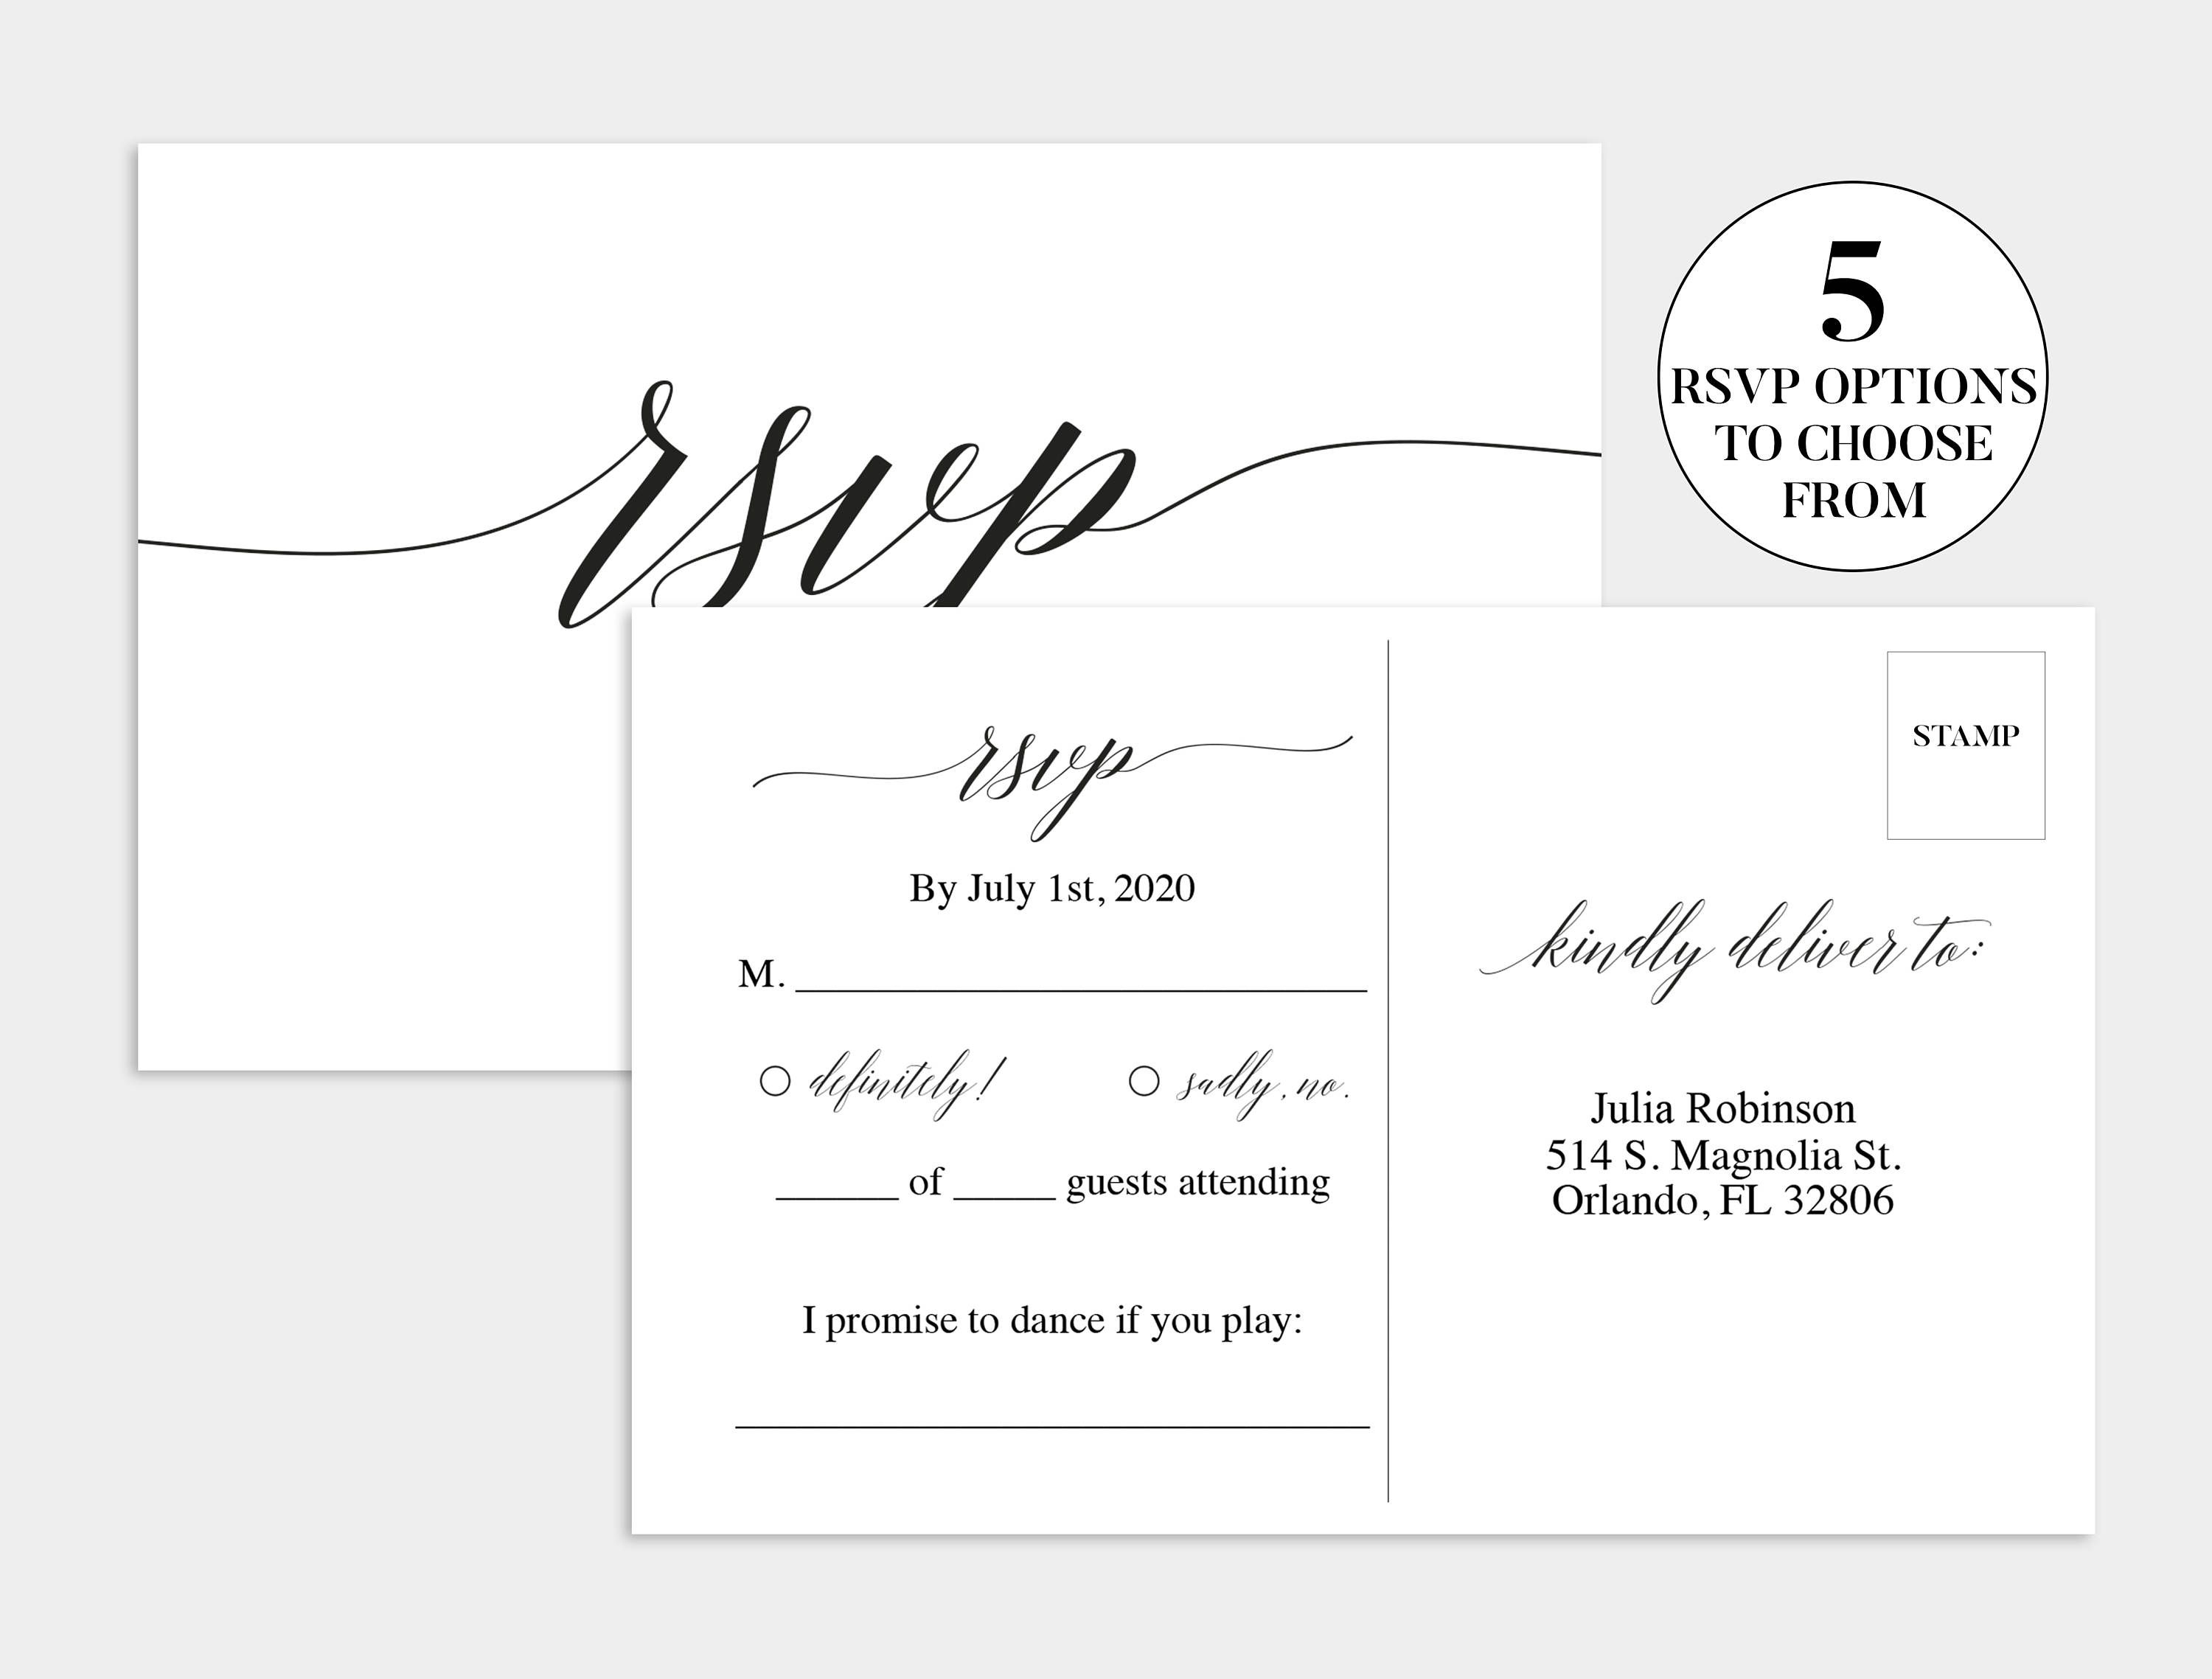 Wedding Rsvp Card Wedding Rsvp Template Wedding Rsvp Etsy In 2021 Wedding Rsvp Postcard Wedding Reply Cards Rsvp Postcard